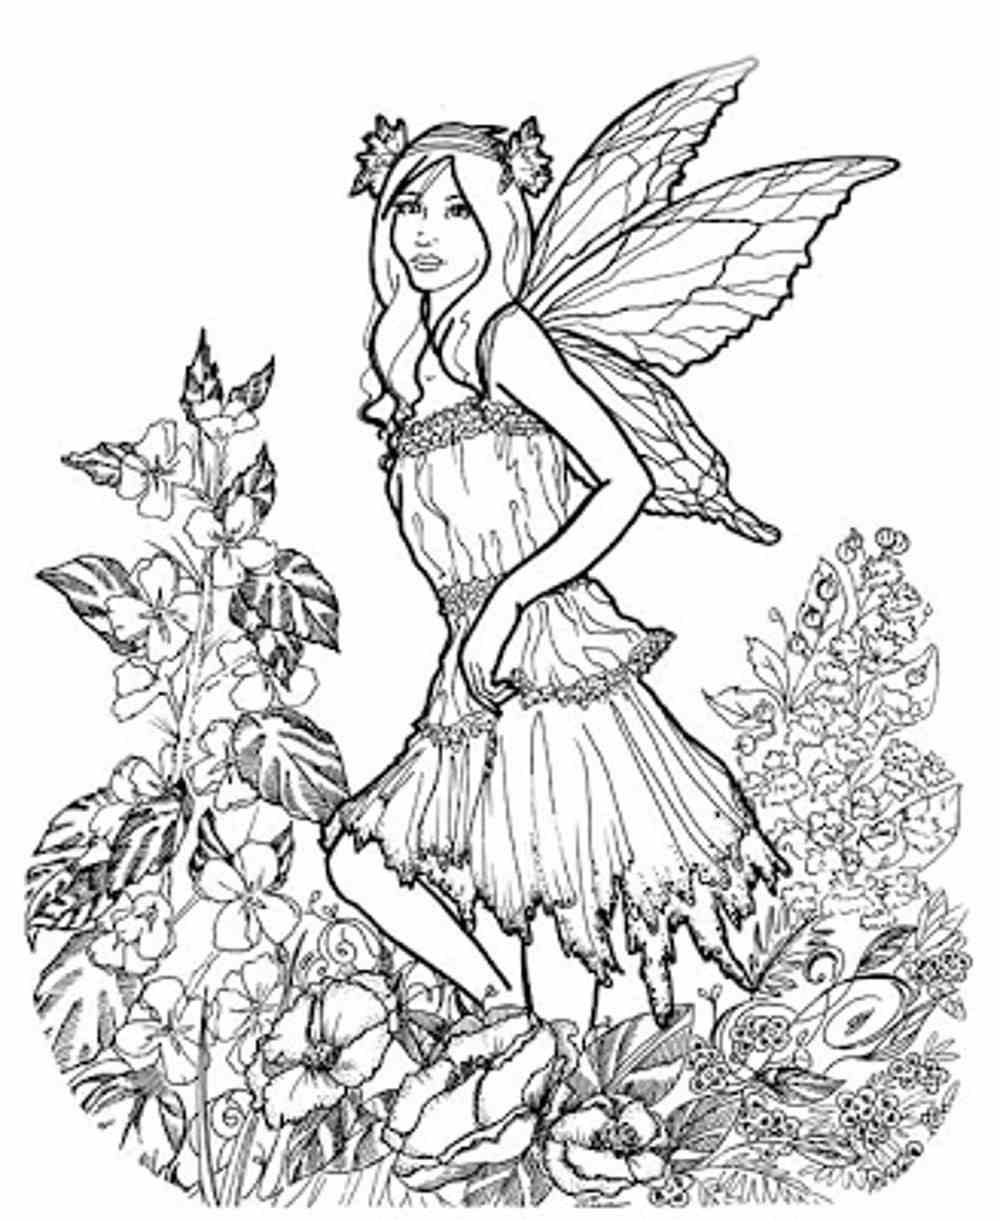 Spring coloring pages for adults free - Detailed Coloring Pages For Adults Printable Kids Colouring Pages